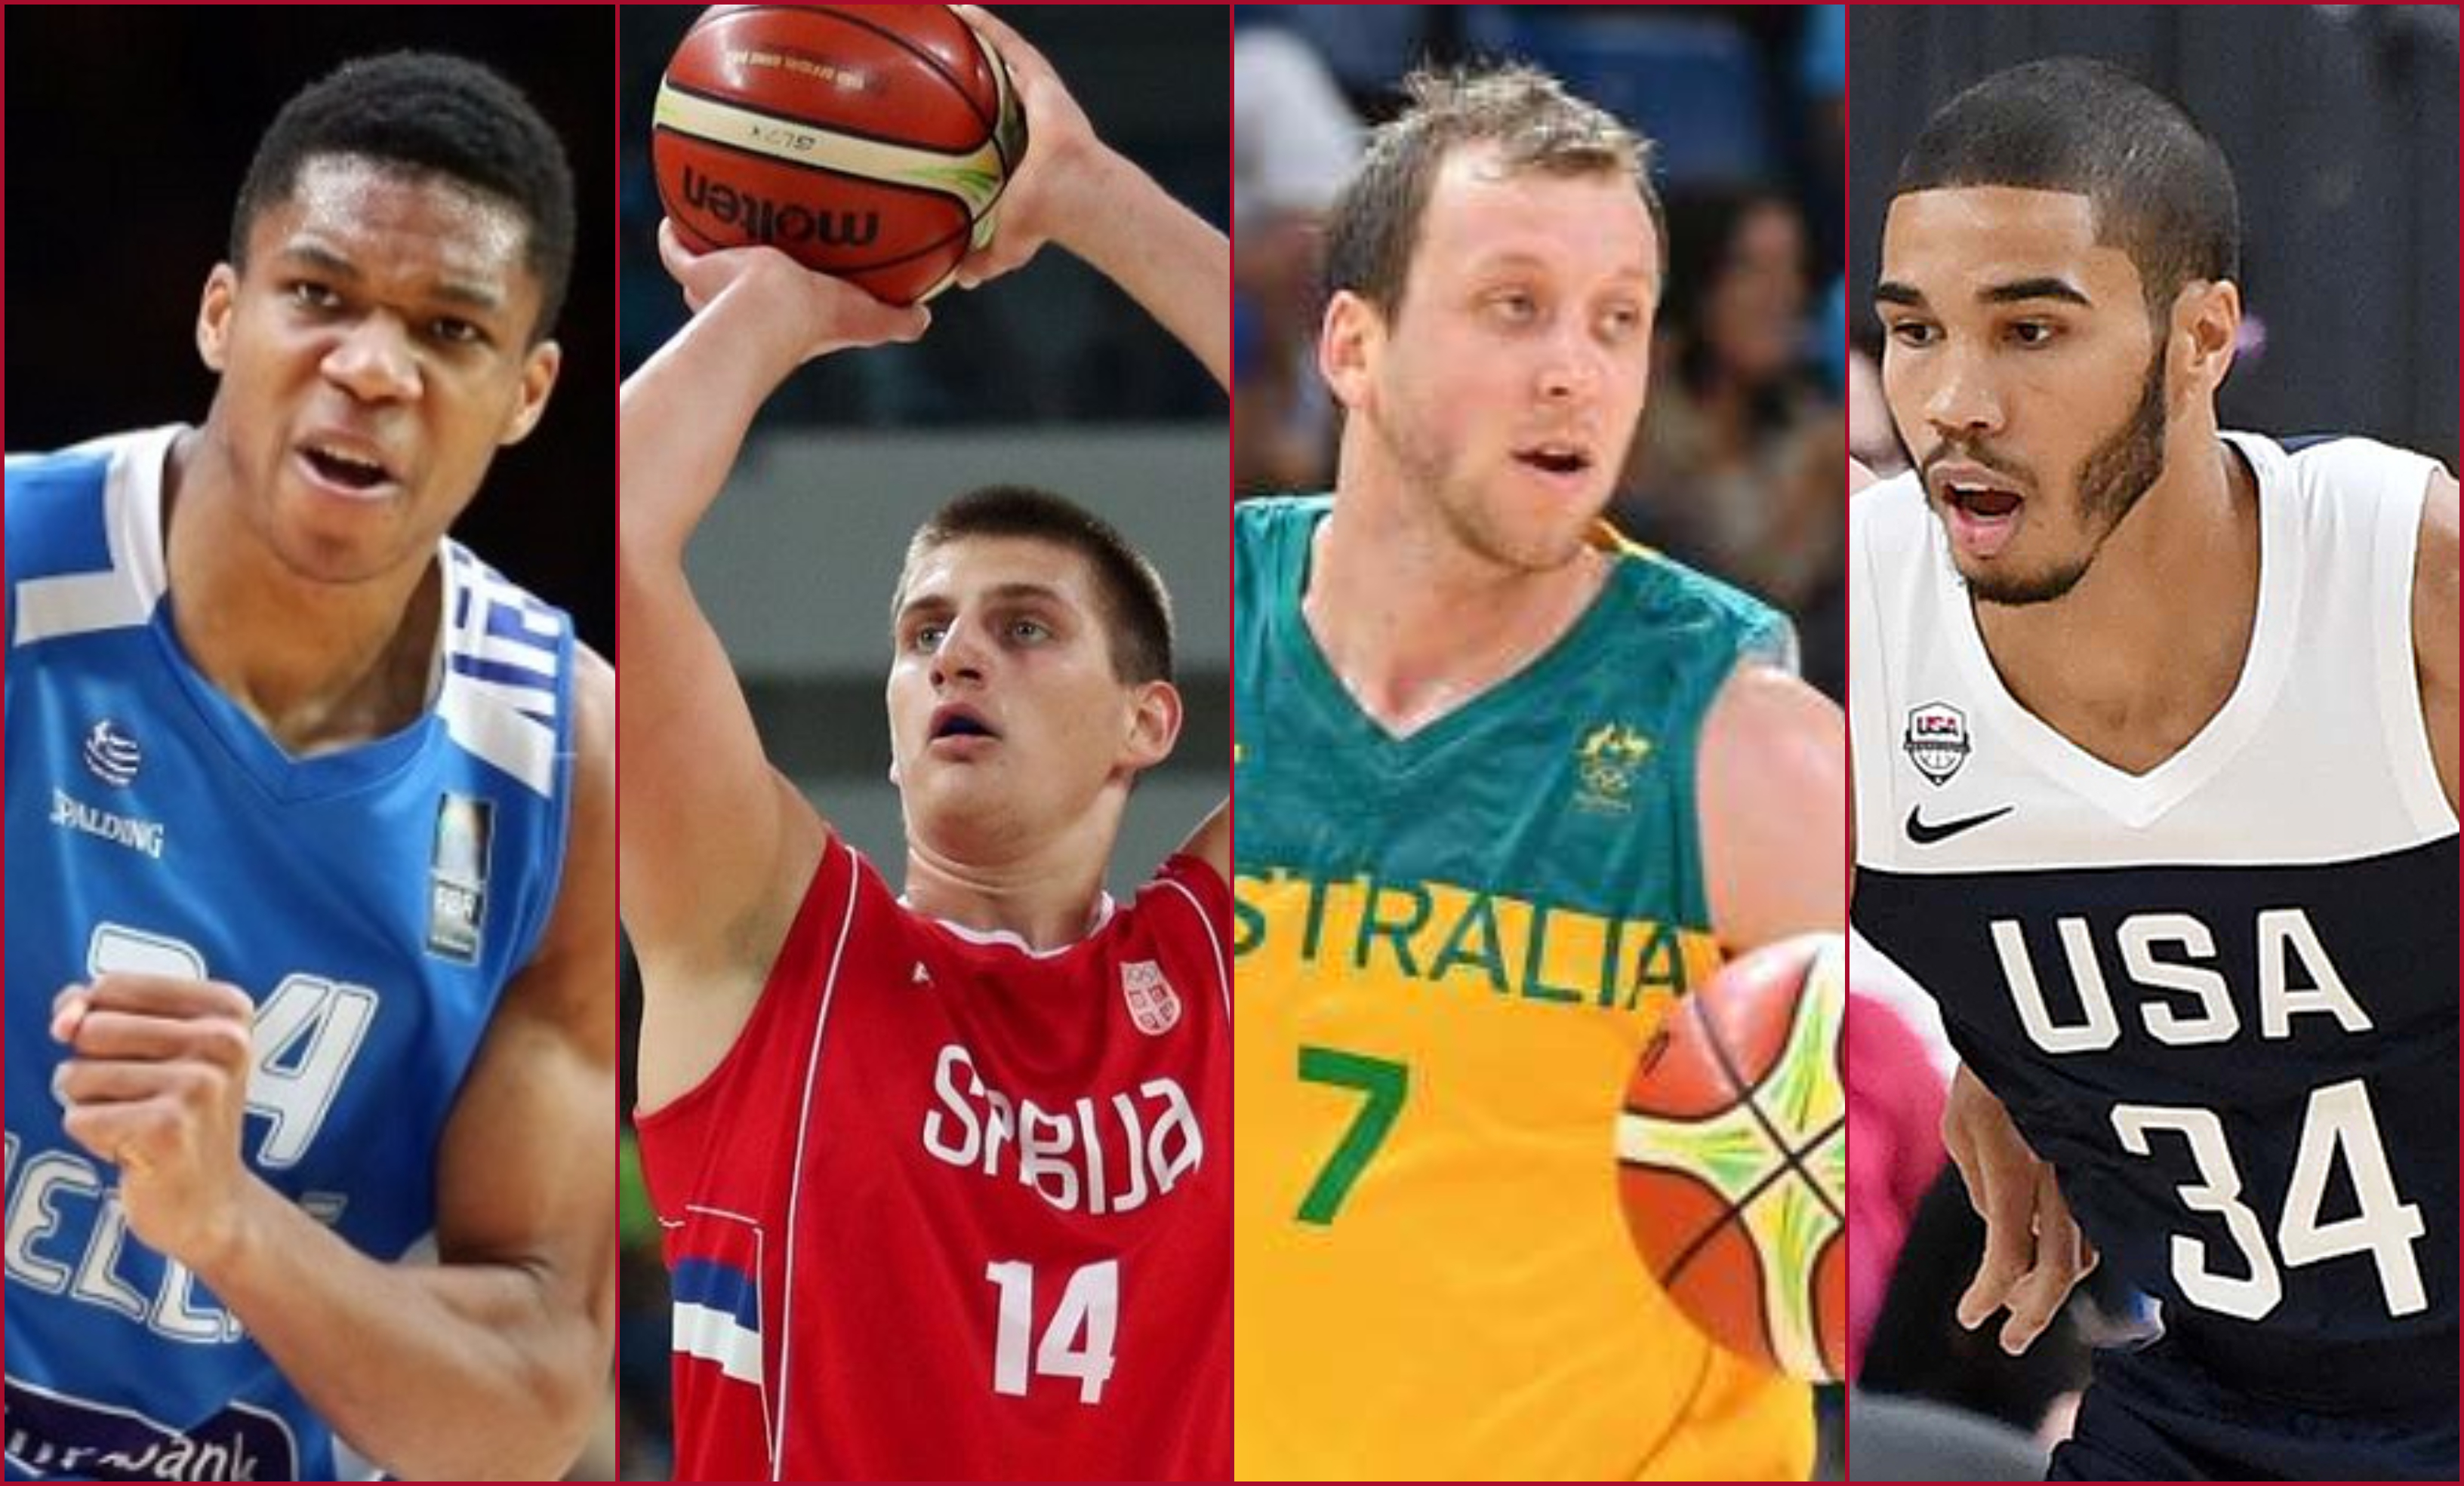 Here's a list of every NBA player participating in the FIBA World Cup